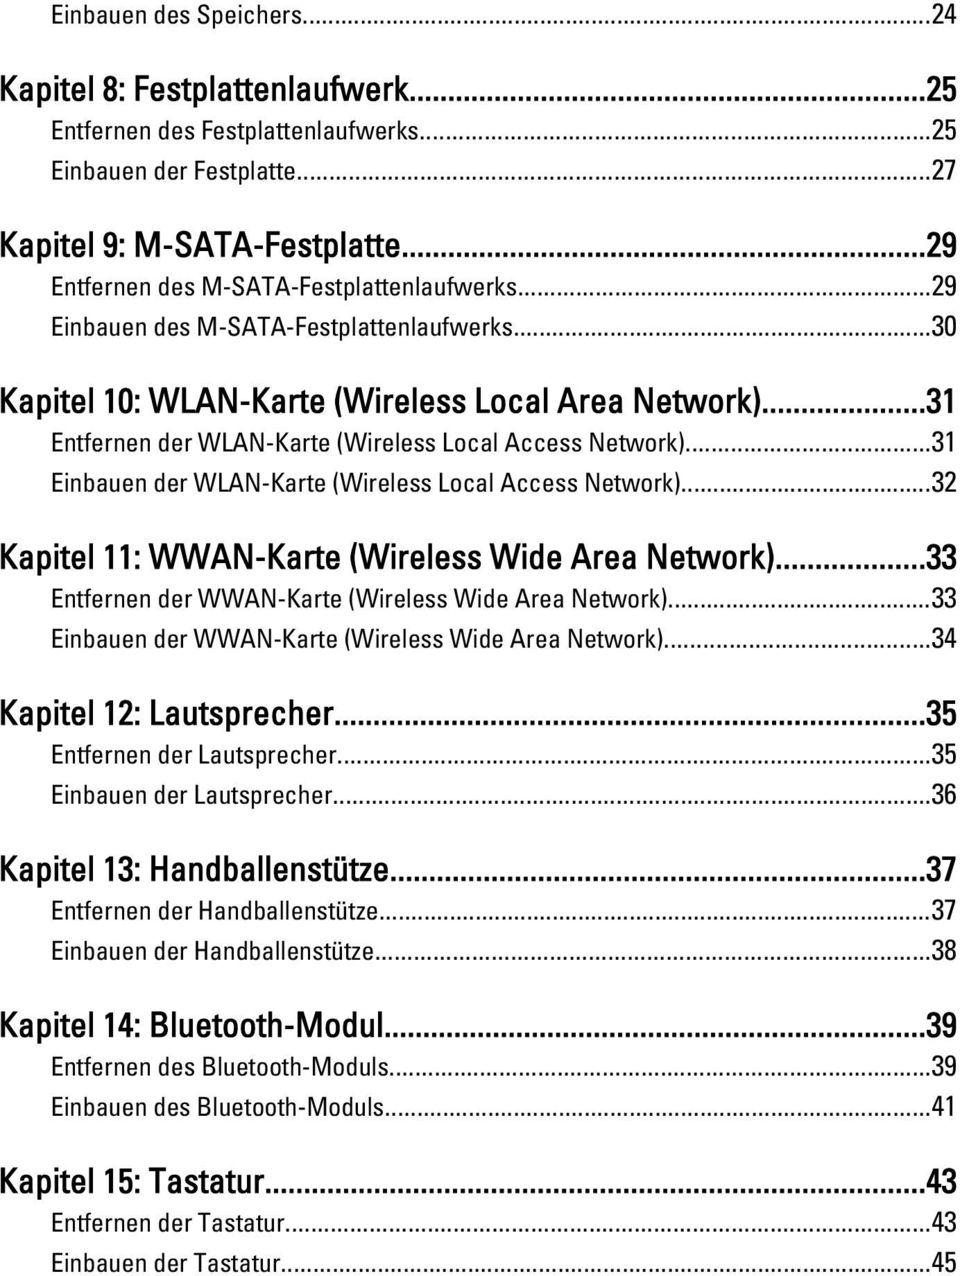 ..31 Entfernen der WLAN-Karte (Wireless Local Access Network)...31 Einbauen der WLAN-Karte (Wireless Local Access Network)...32 Kapitel 11: WWAN-Karte (Wireless Wide Area Network).